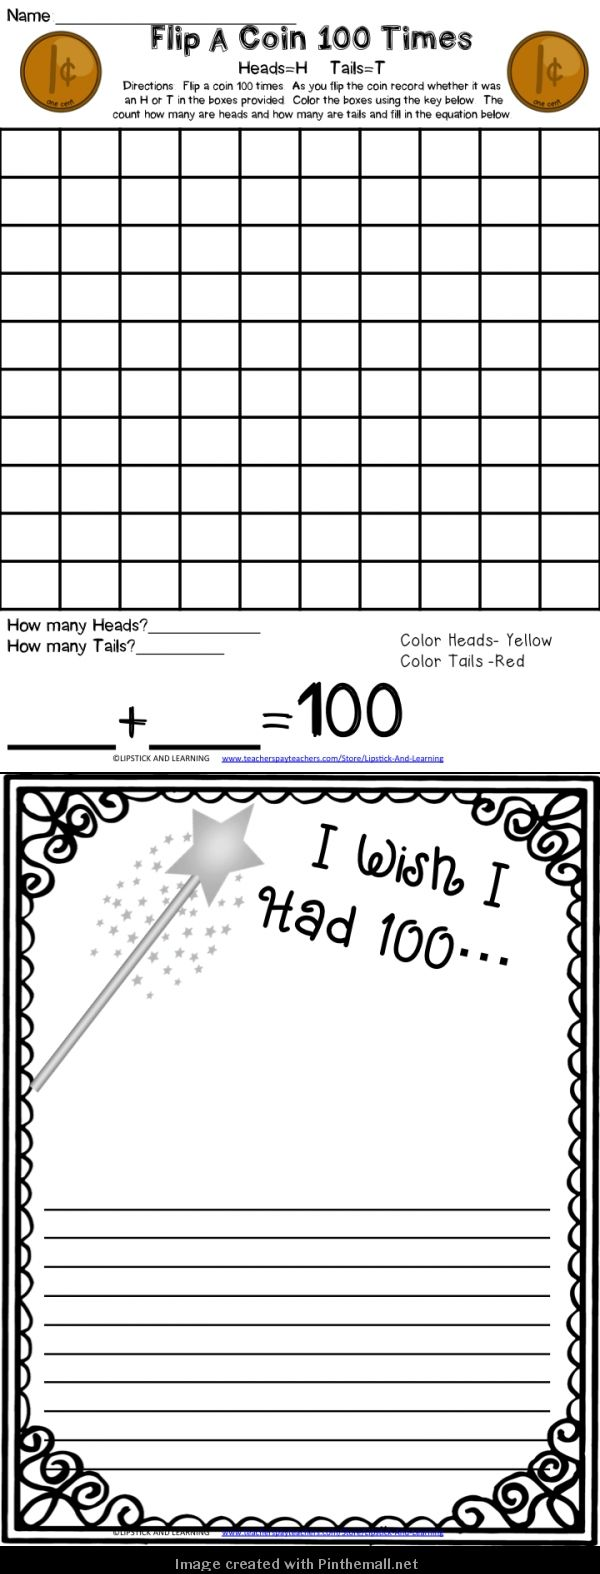 133 best 100th day of school images on pinterest 100 days of this would be a partner activity for the coin flipping and then each student would writefill out the i wish i had 100 and share with their partner nvjuhfo Choice Image